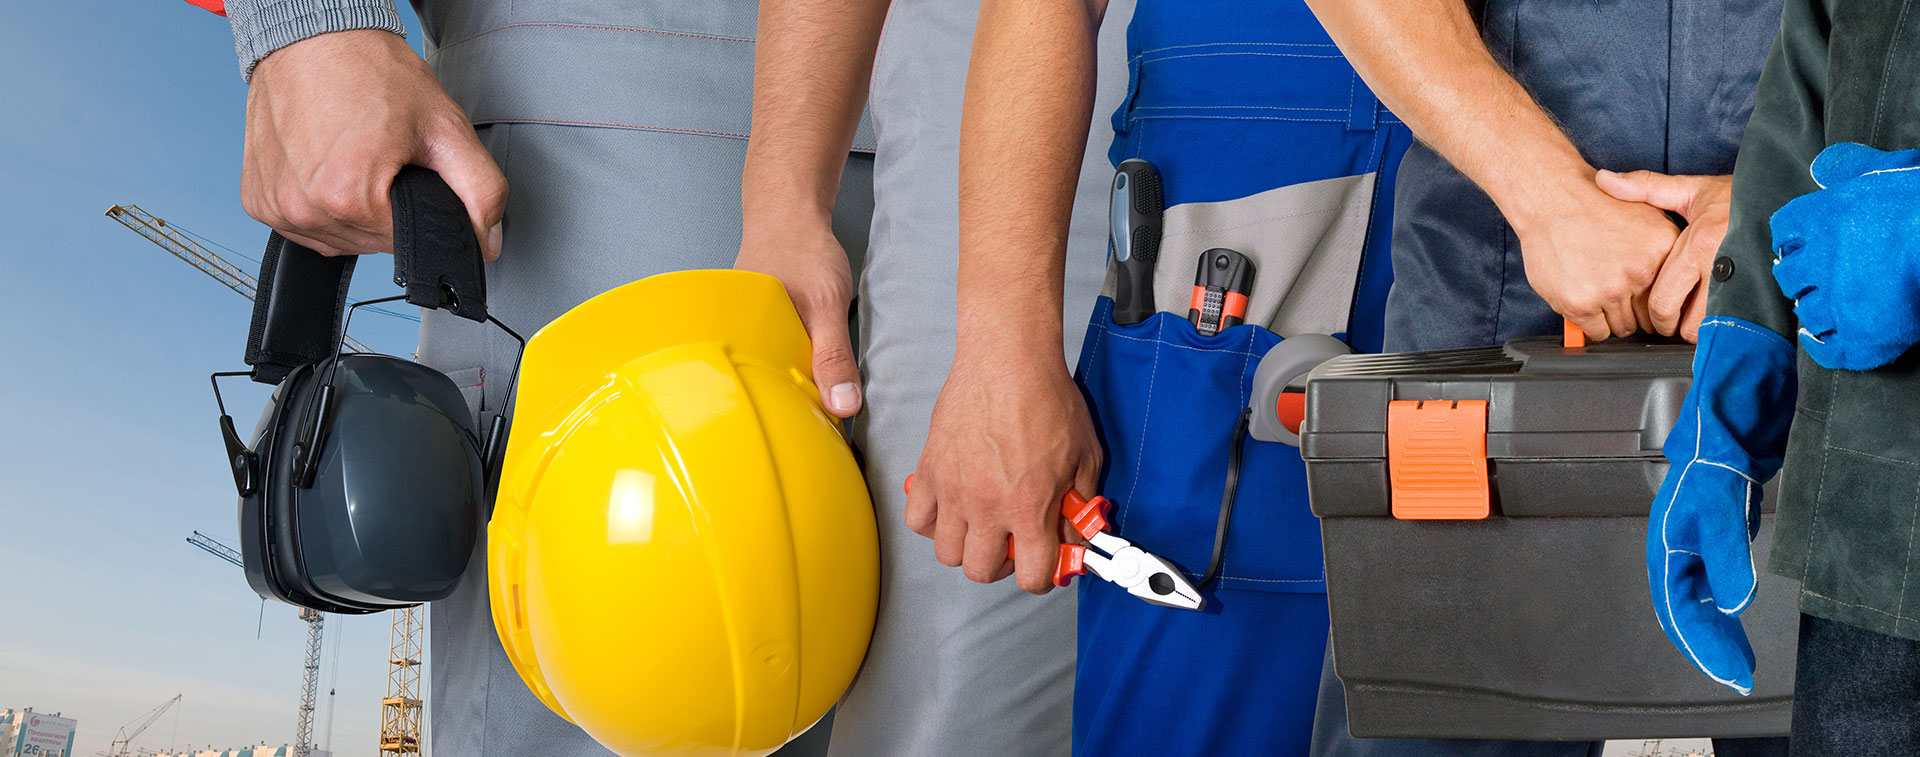 SAFETY AT WORK TRAINING COURSE